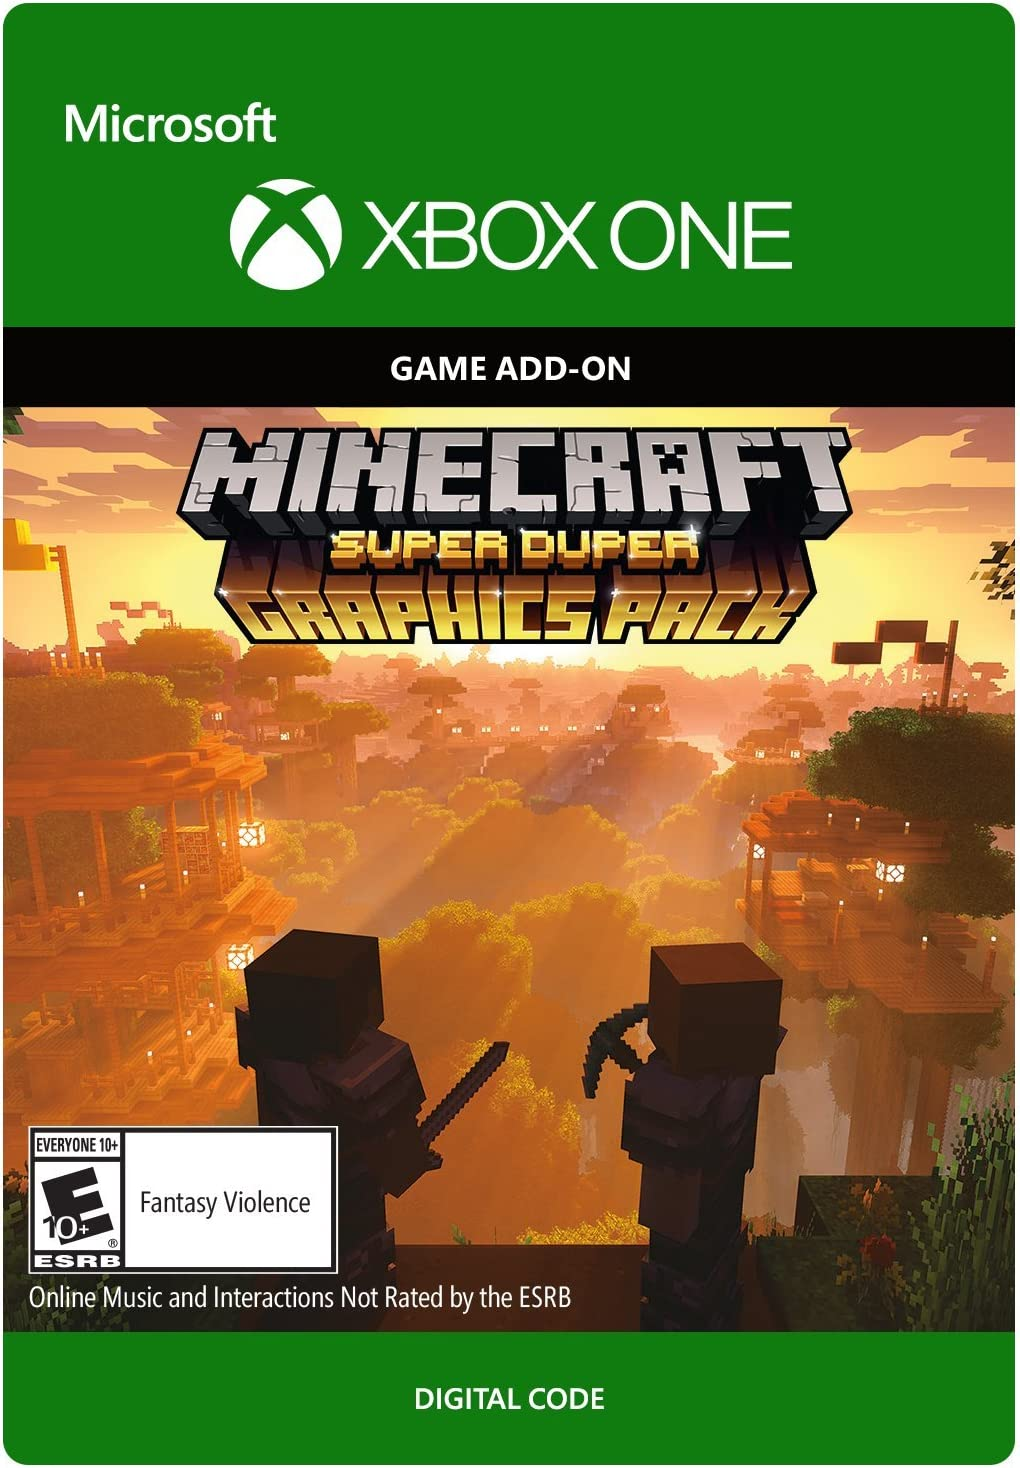 Best Minecraft Texture Packs 2020 Amazon.com: Minecraft Super Duper Graphics Pack   Xbox One